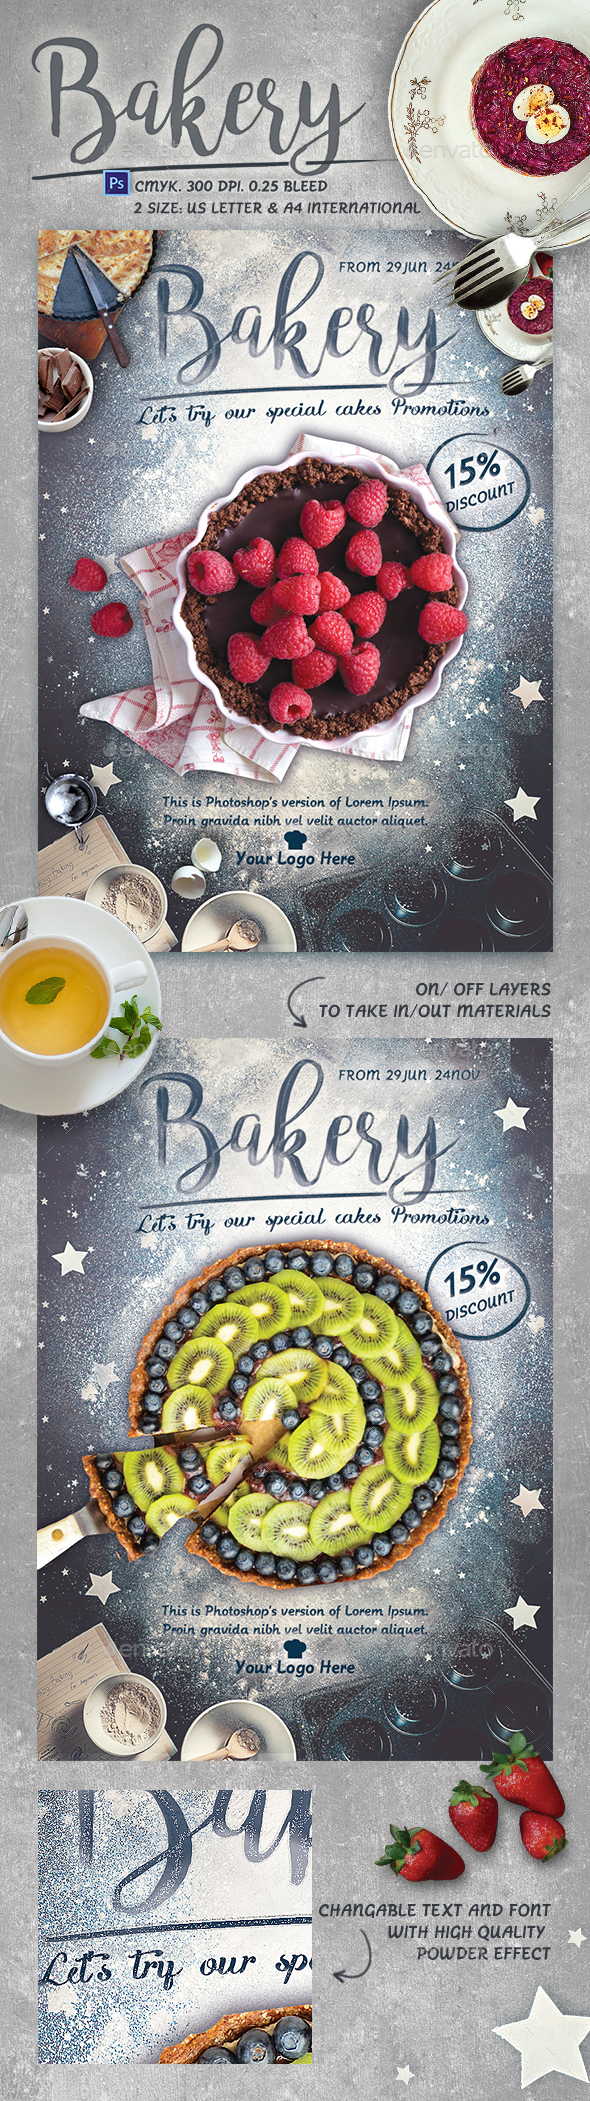 Bakery Promotion Flyer Template - Restaurant Flyers